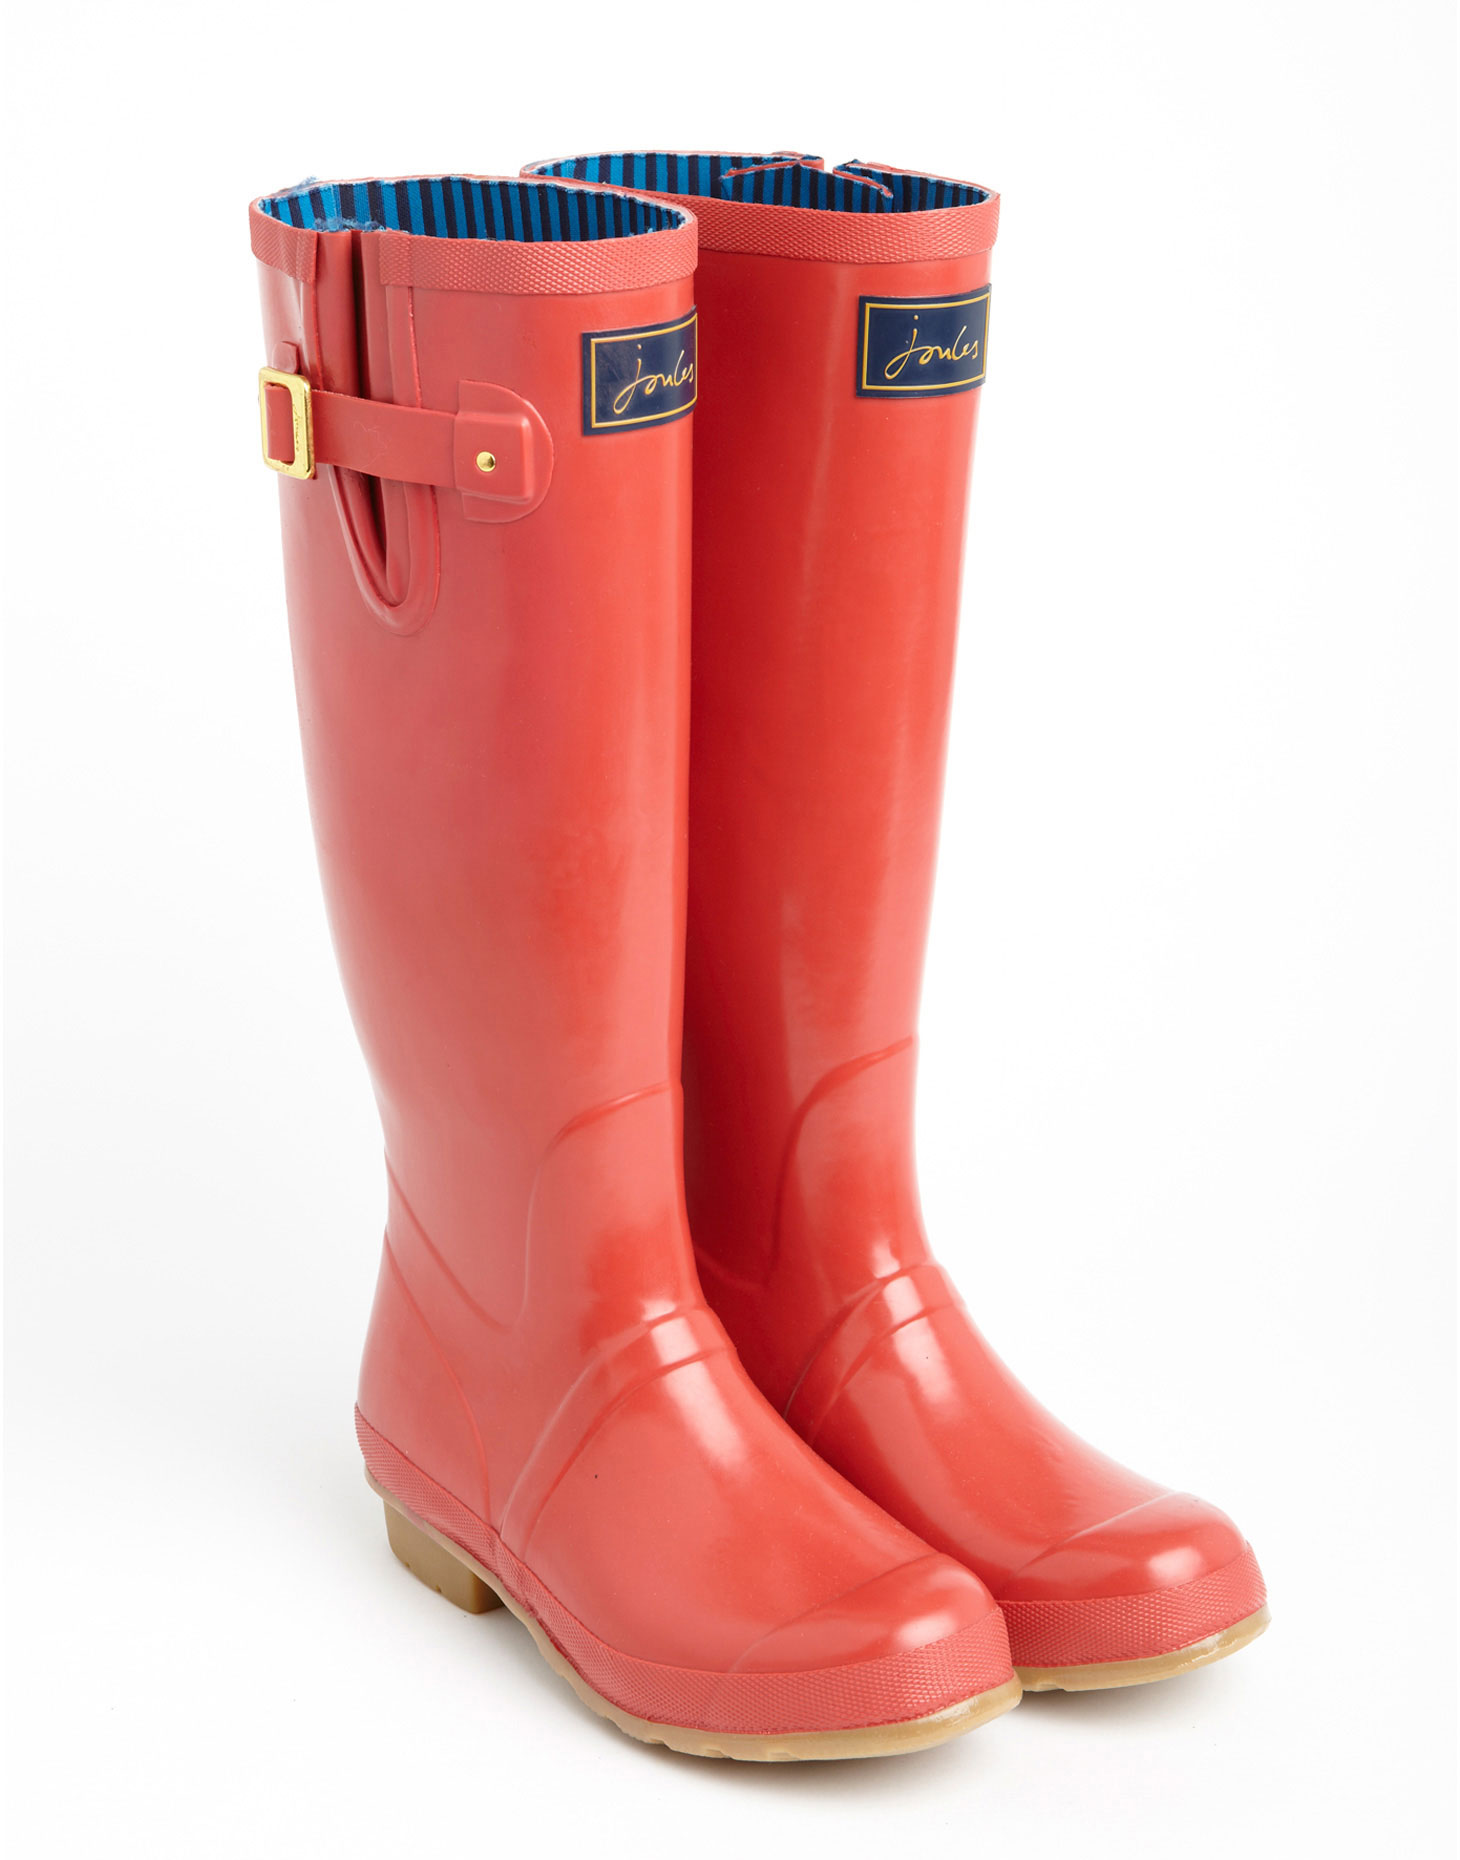 Womens Red Rain Boots alo5BdOy